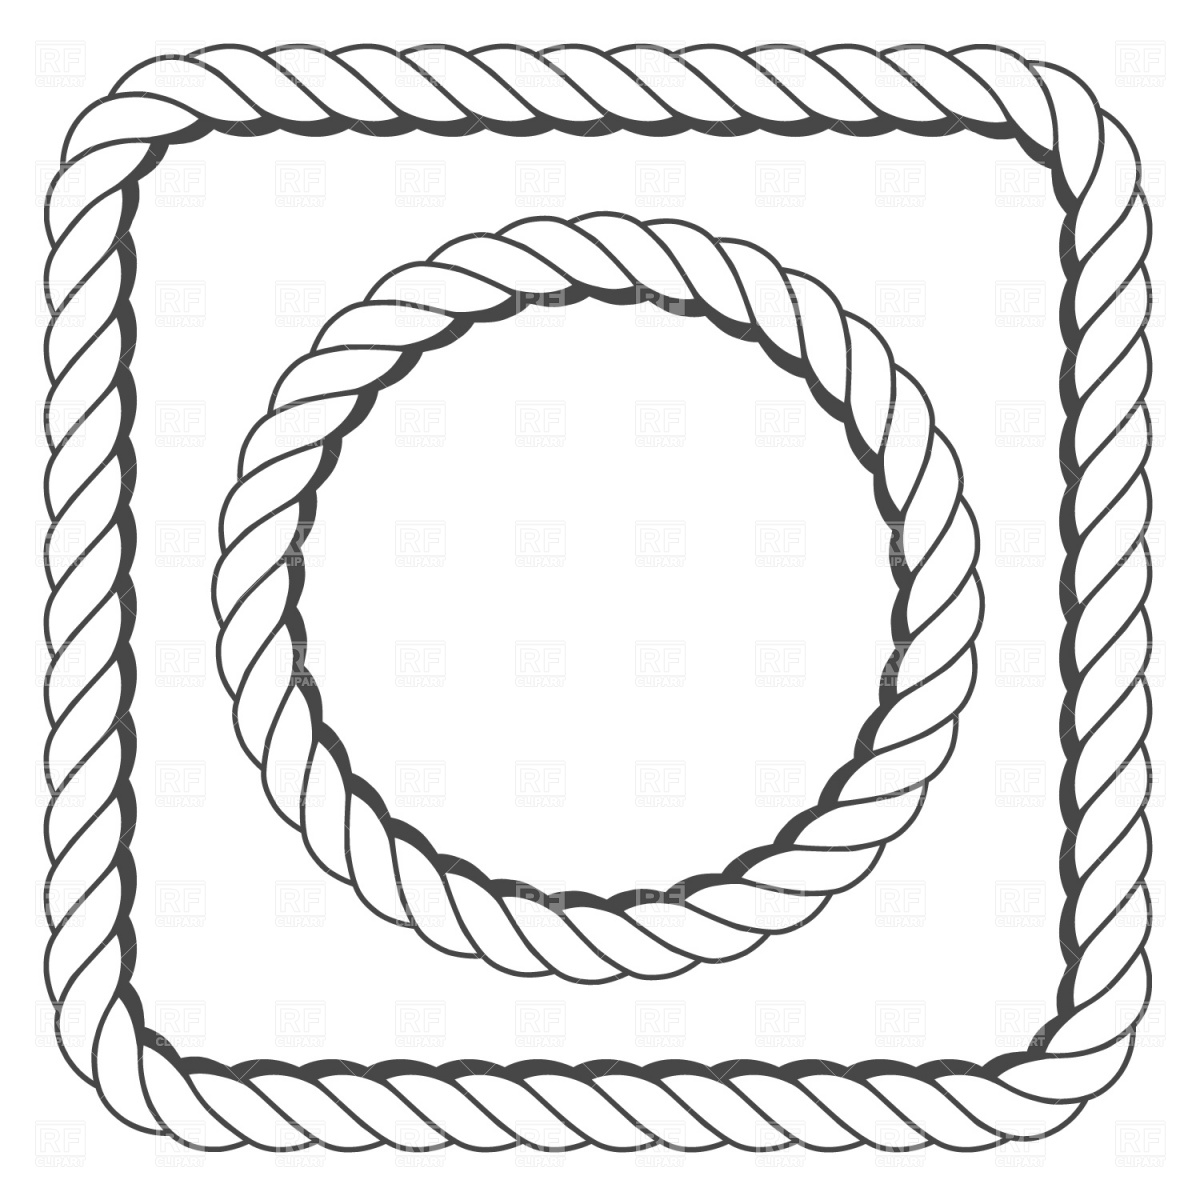 anchor coloring page -